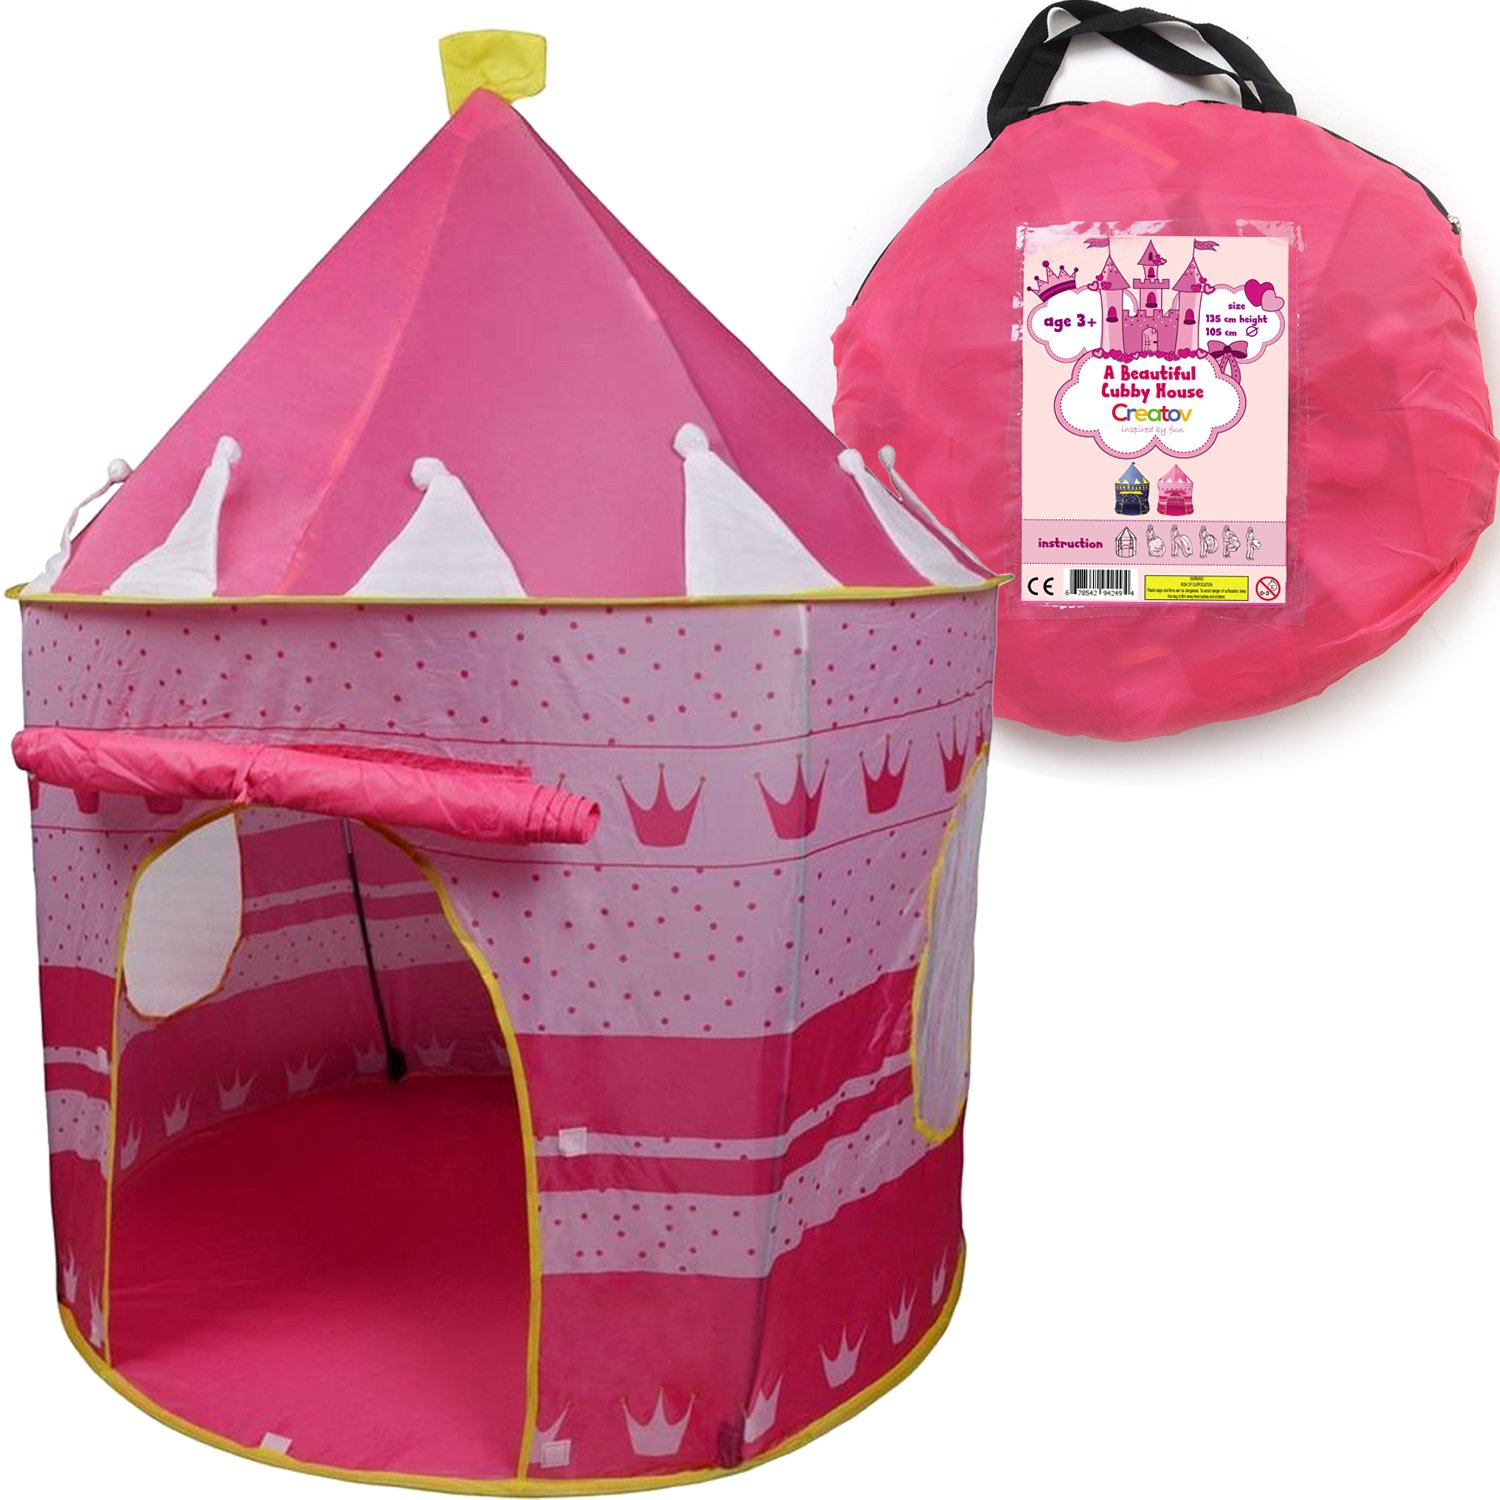 Amazon.com Children Play Tent Girls Pink Castle for Indoor/Outdoor Use With Glow in the Dark Stars Foldable with Carry Case - Creatov Toys u0026 Games  sc 1 st  Amazon.com & Amazon.com: Children Play Tent Girls Pink Castle for Indoor ...